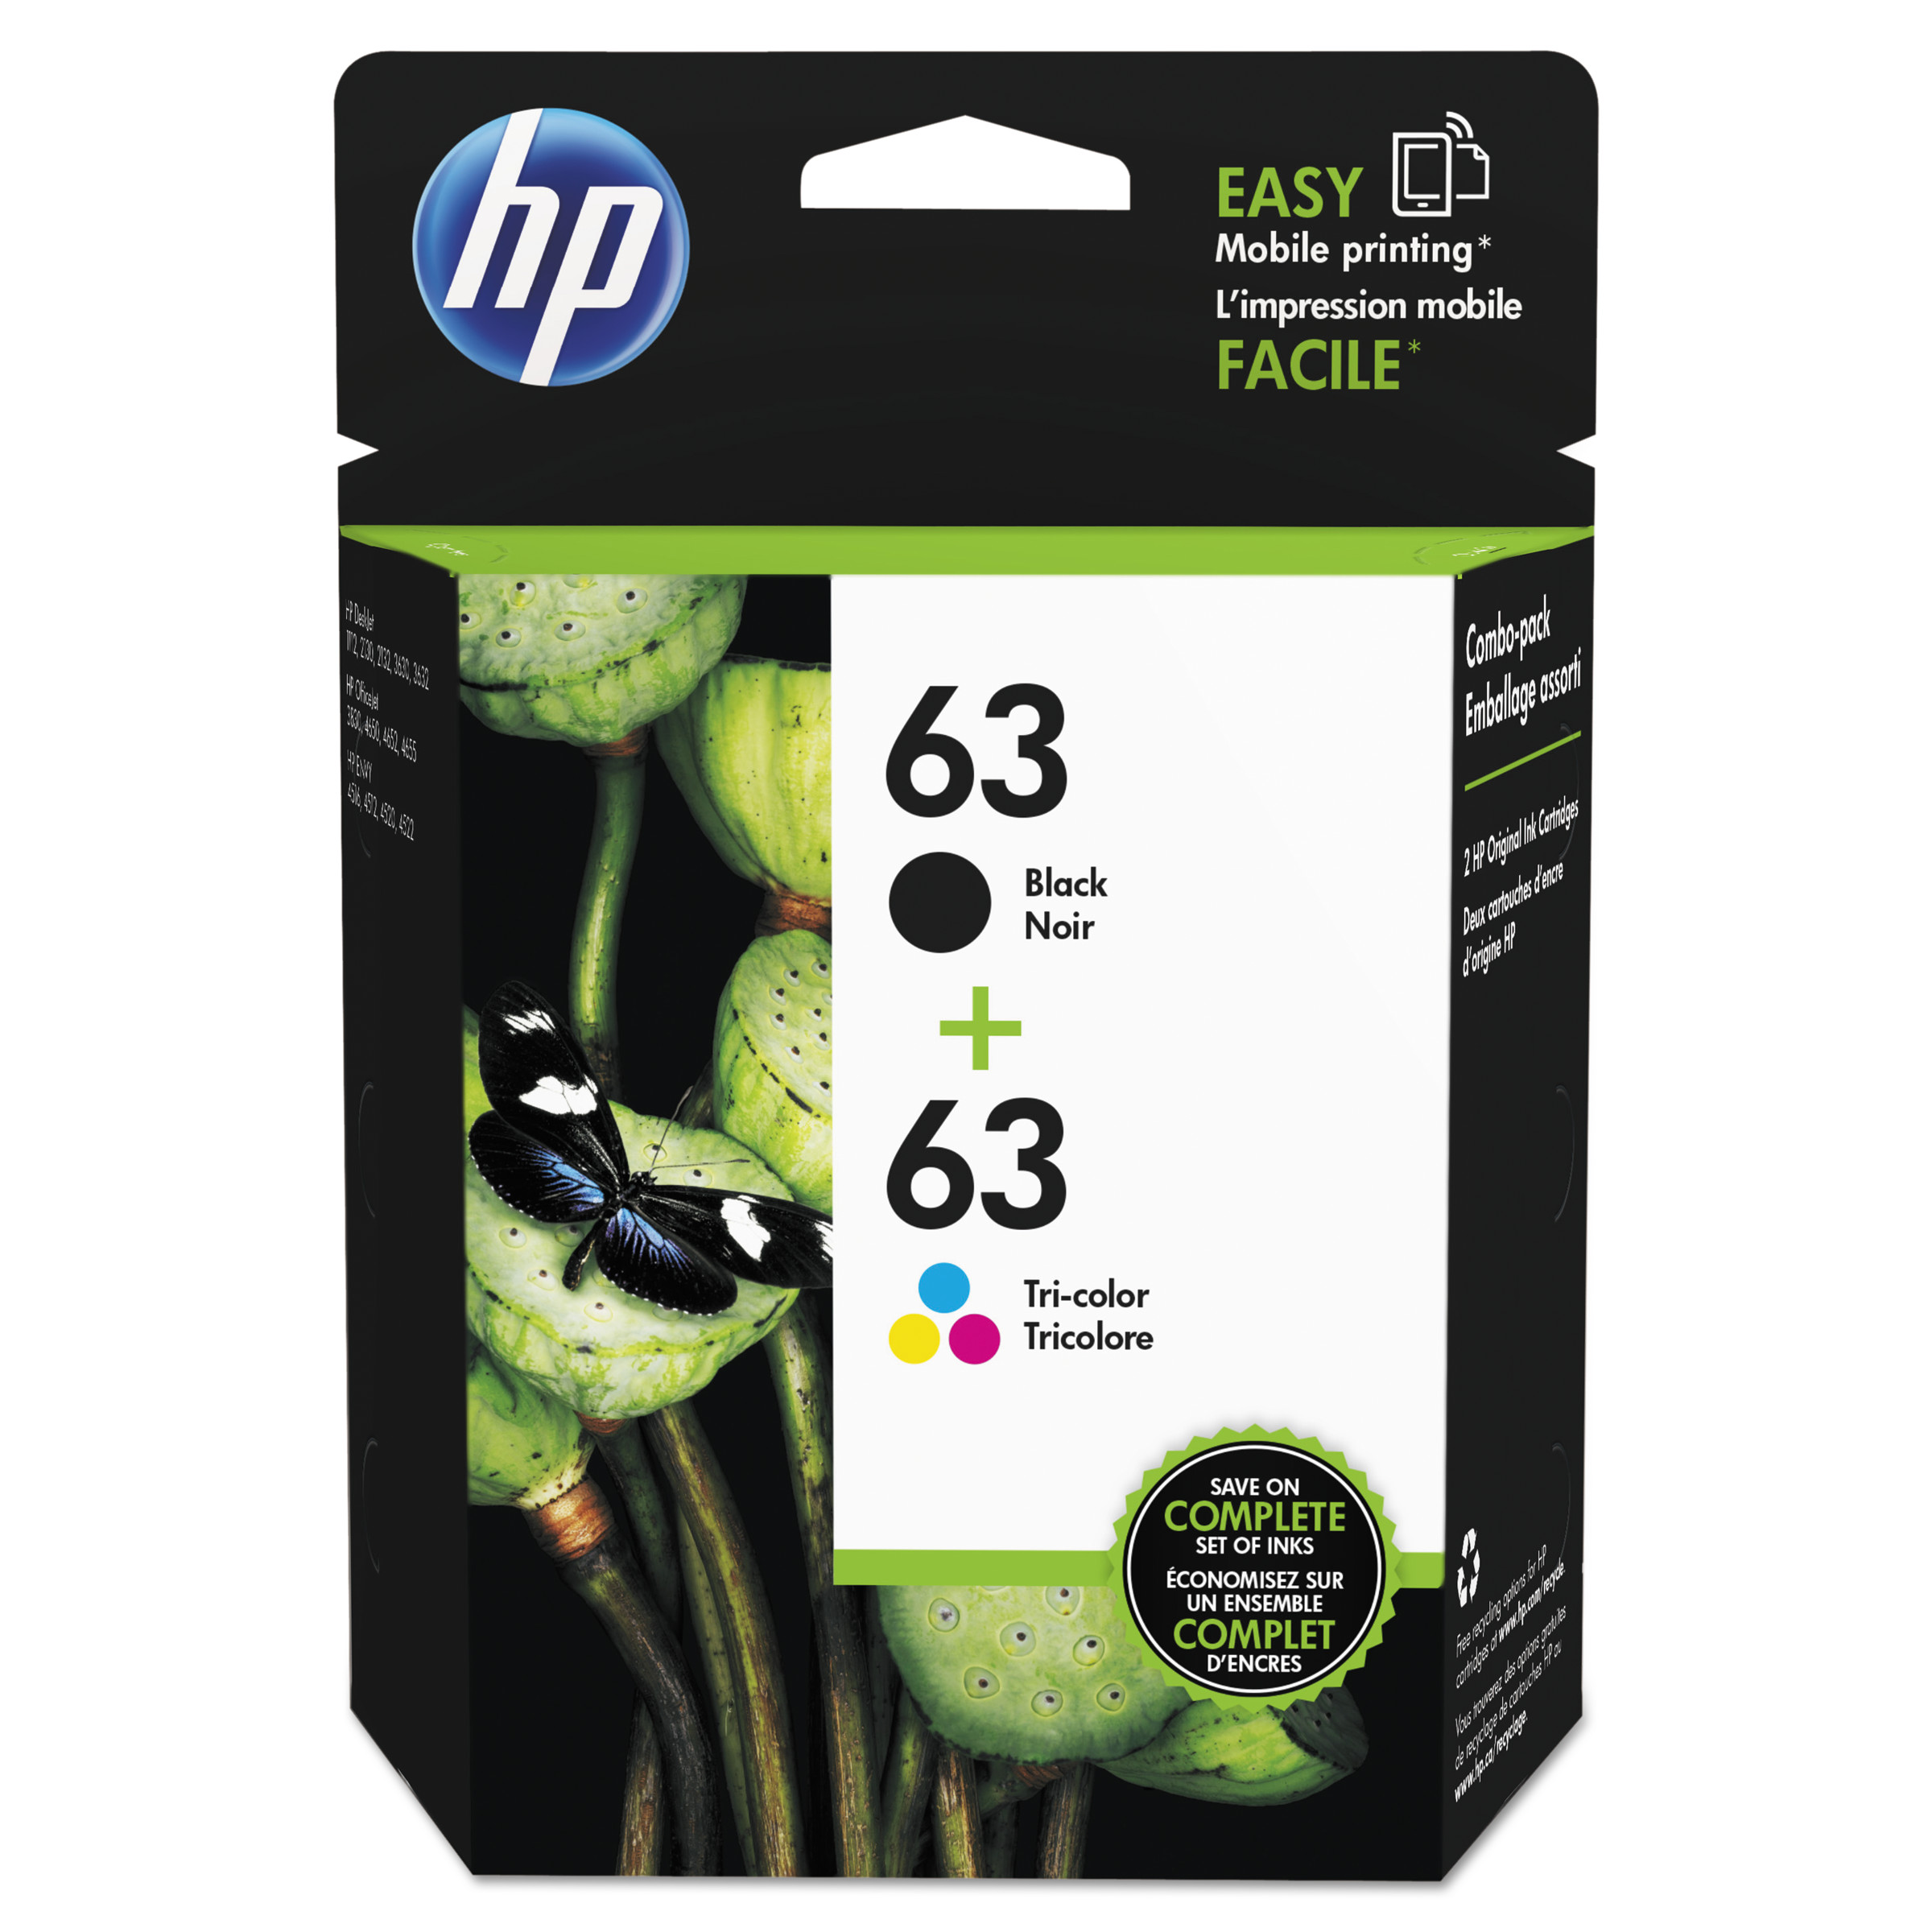 HP 63 Black & Tri-color ink cartridges, 2-Pack (L0R46AN)